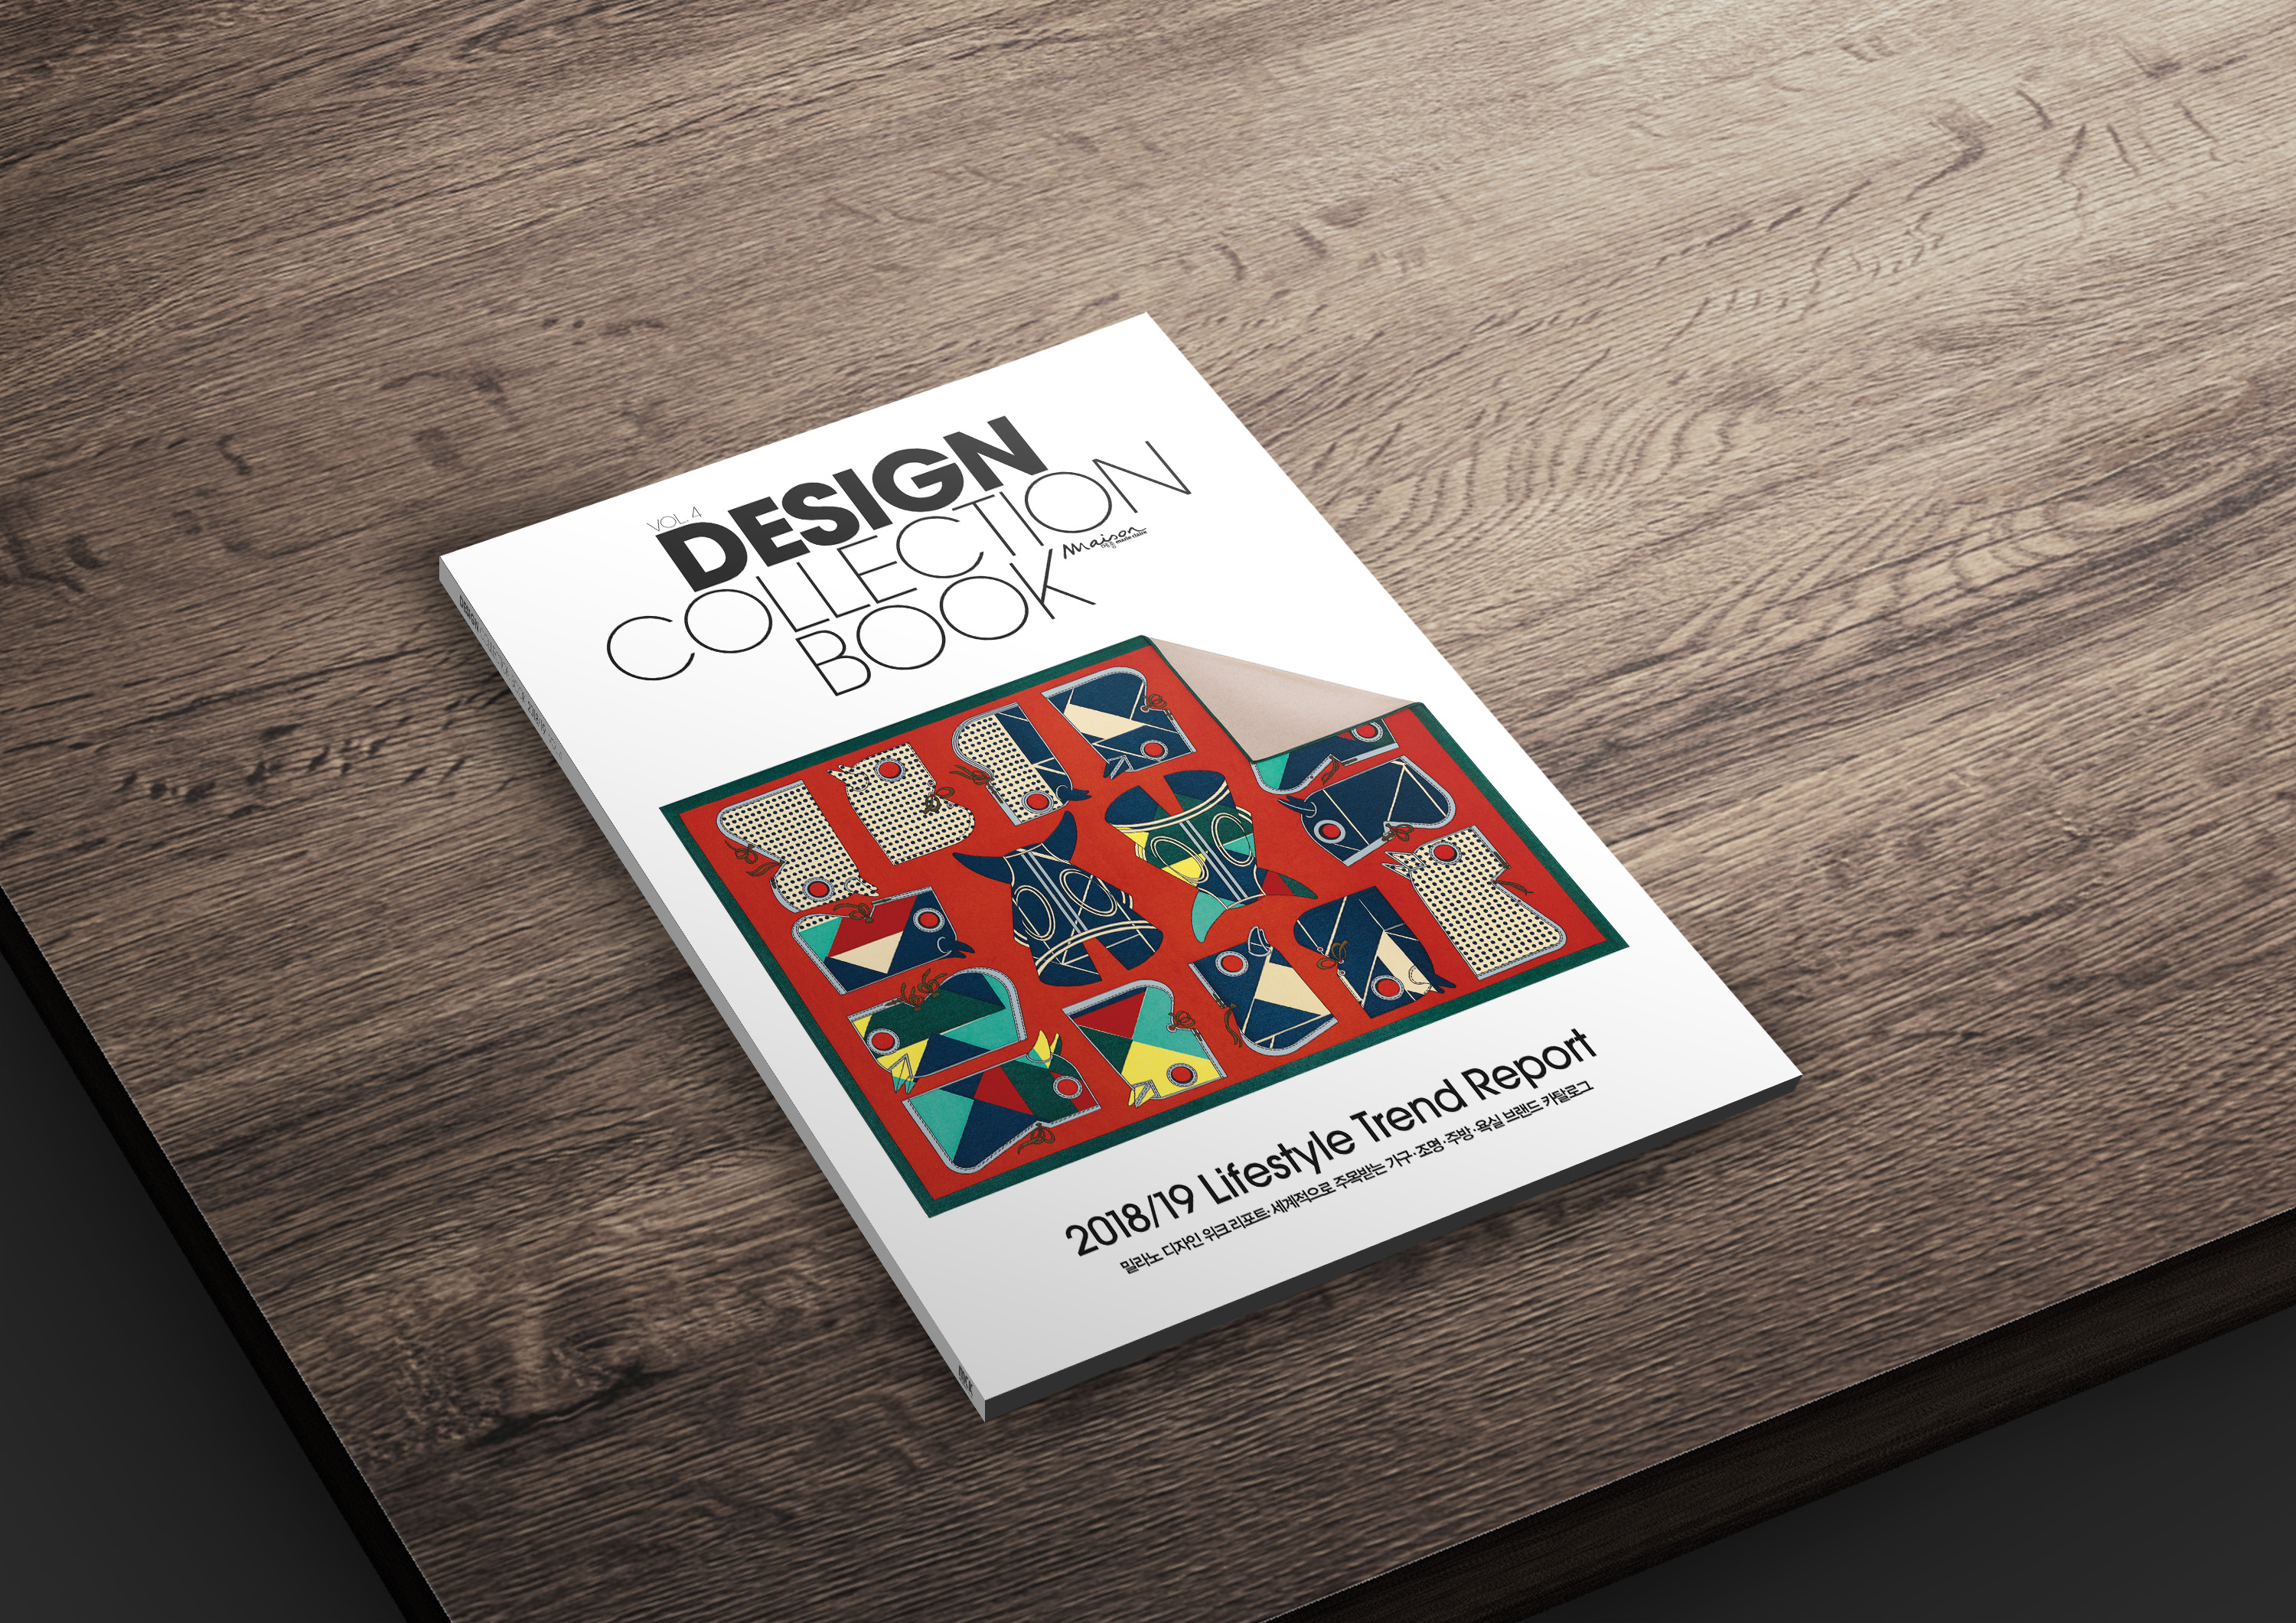 Design Collection Book 2018